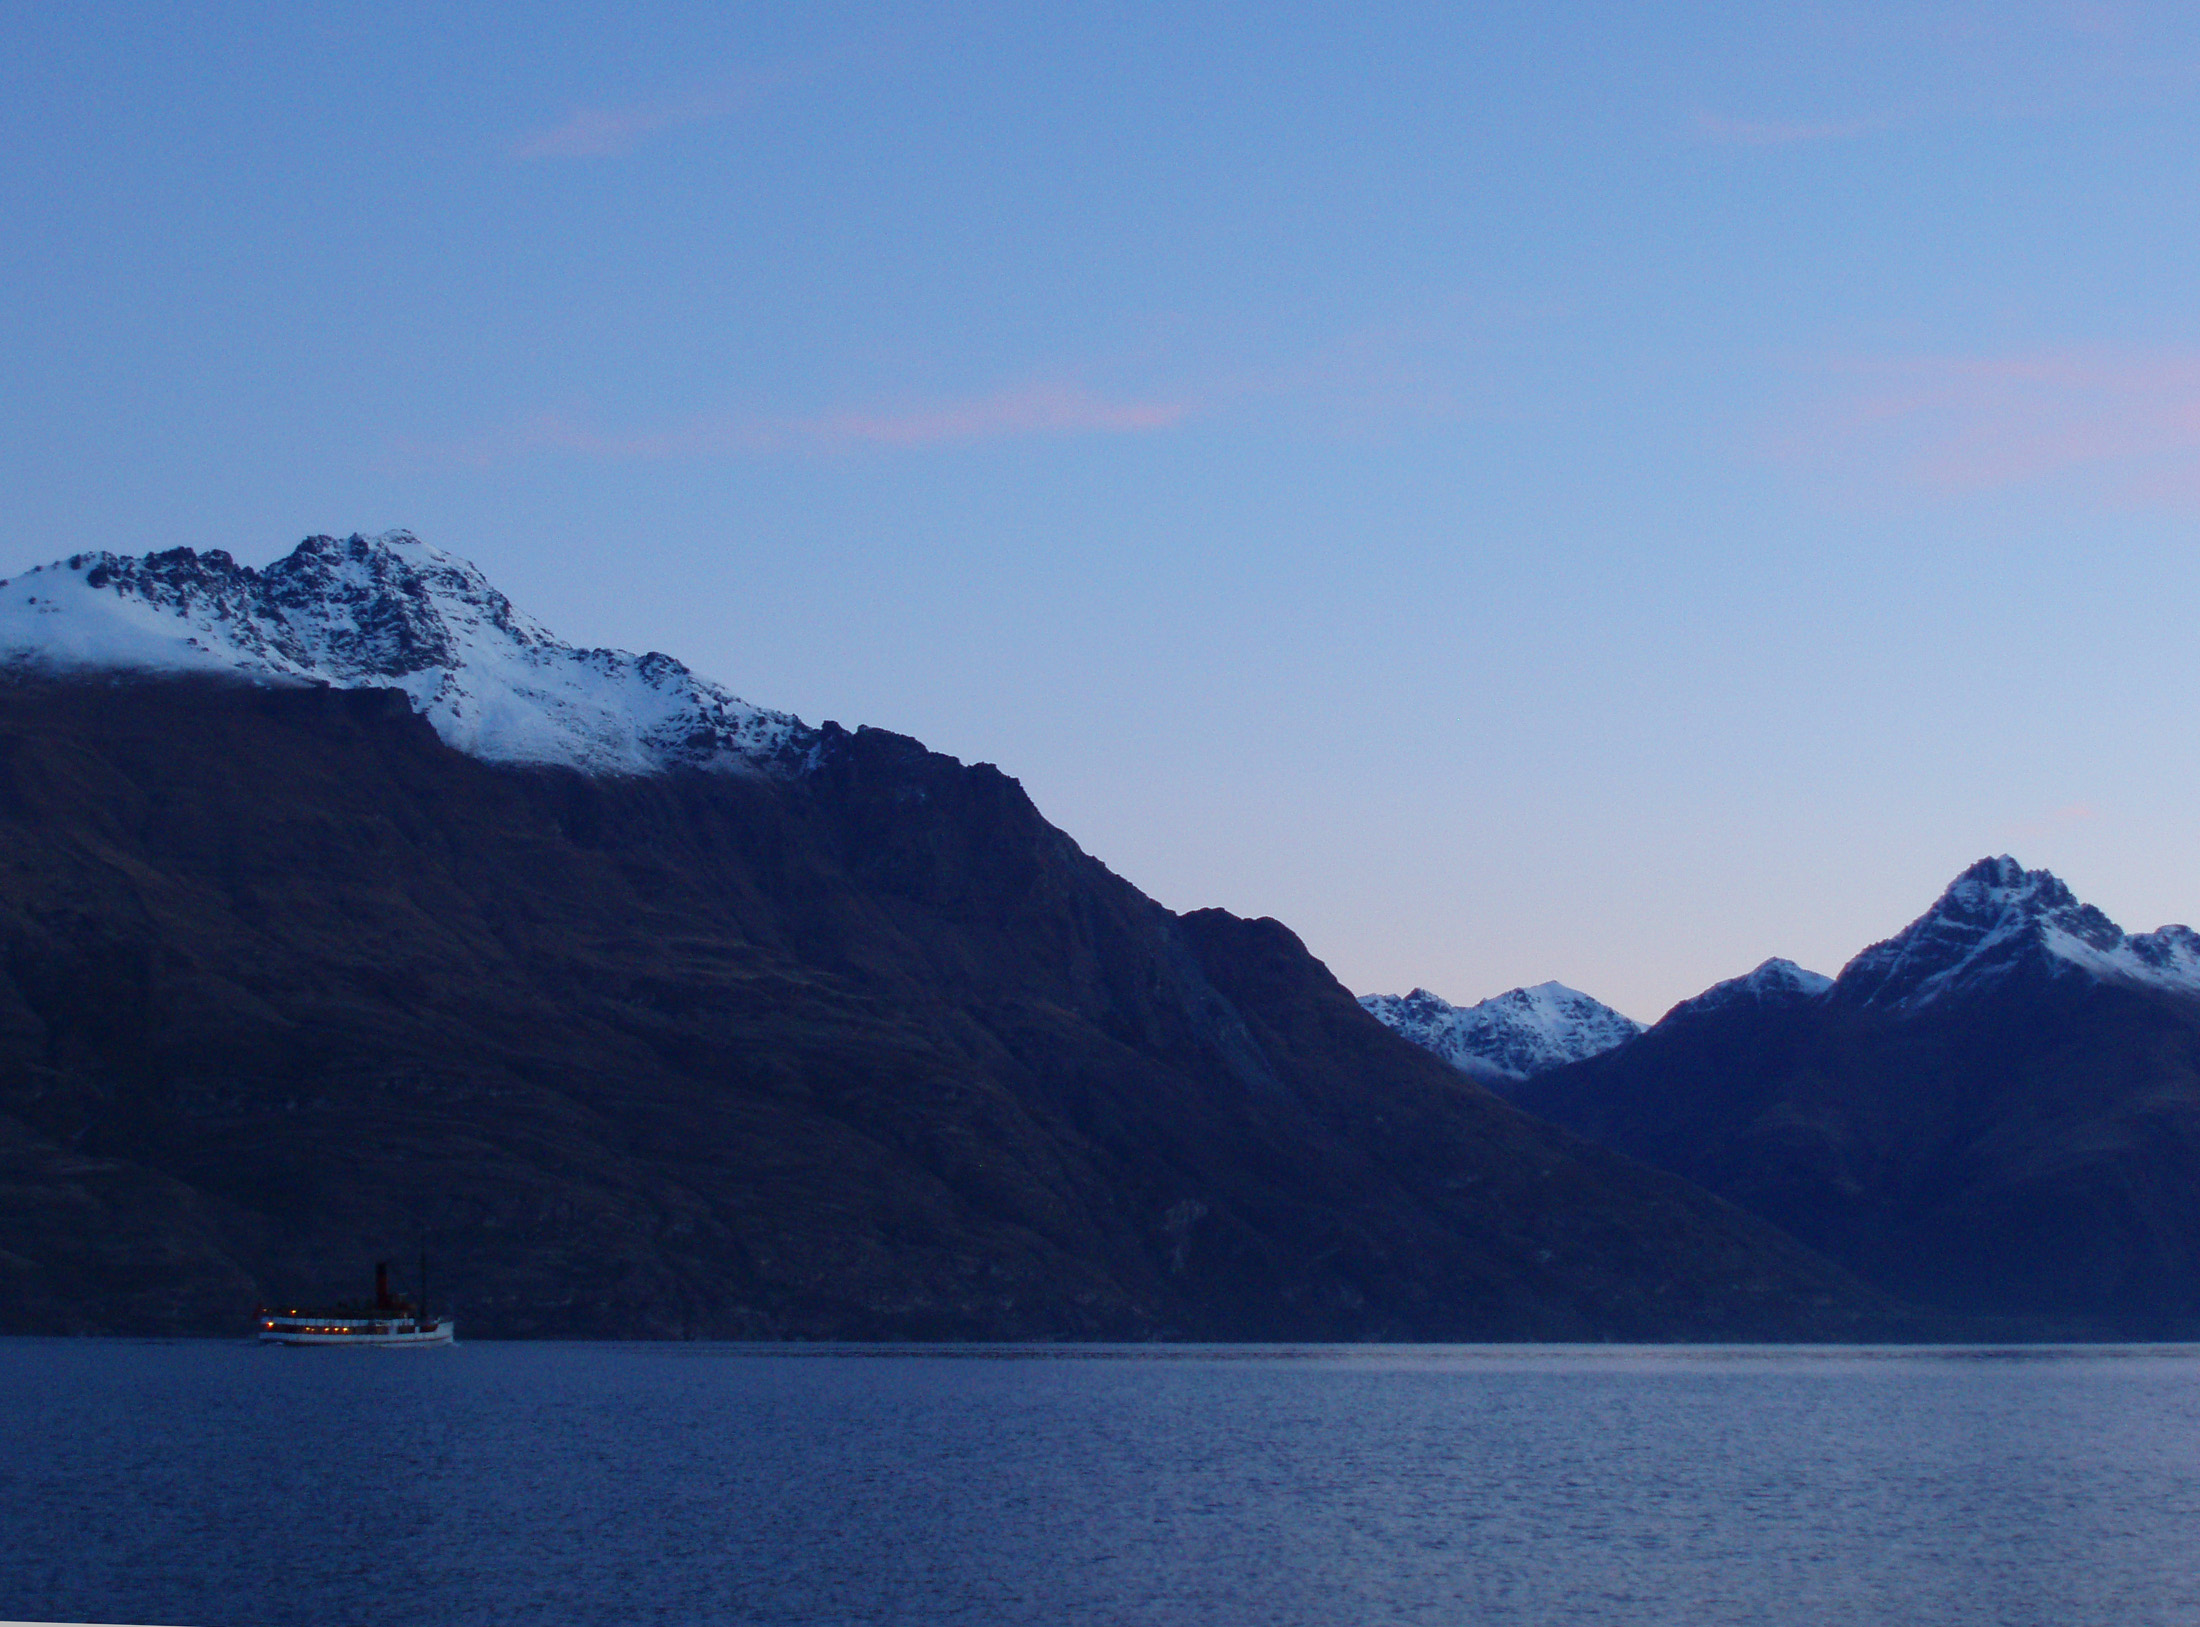 the TSS earnslaw streamer at sunset on lake wakatipu, queenstown in winter